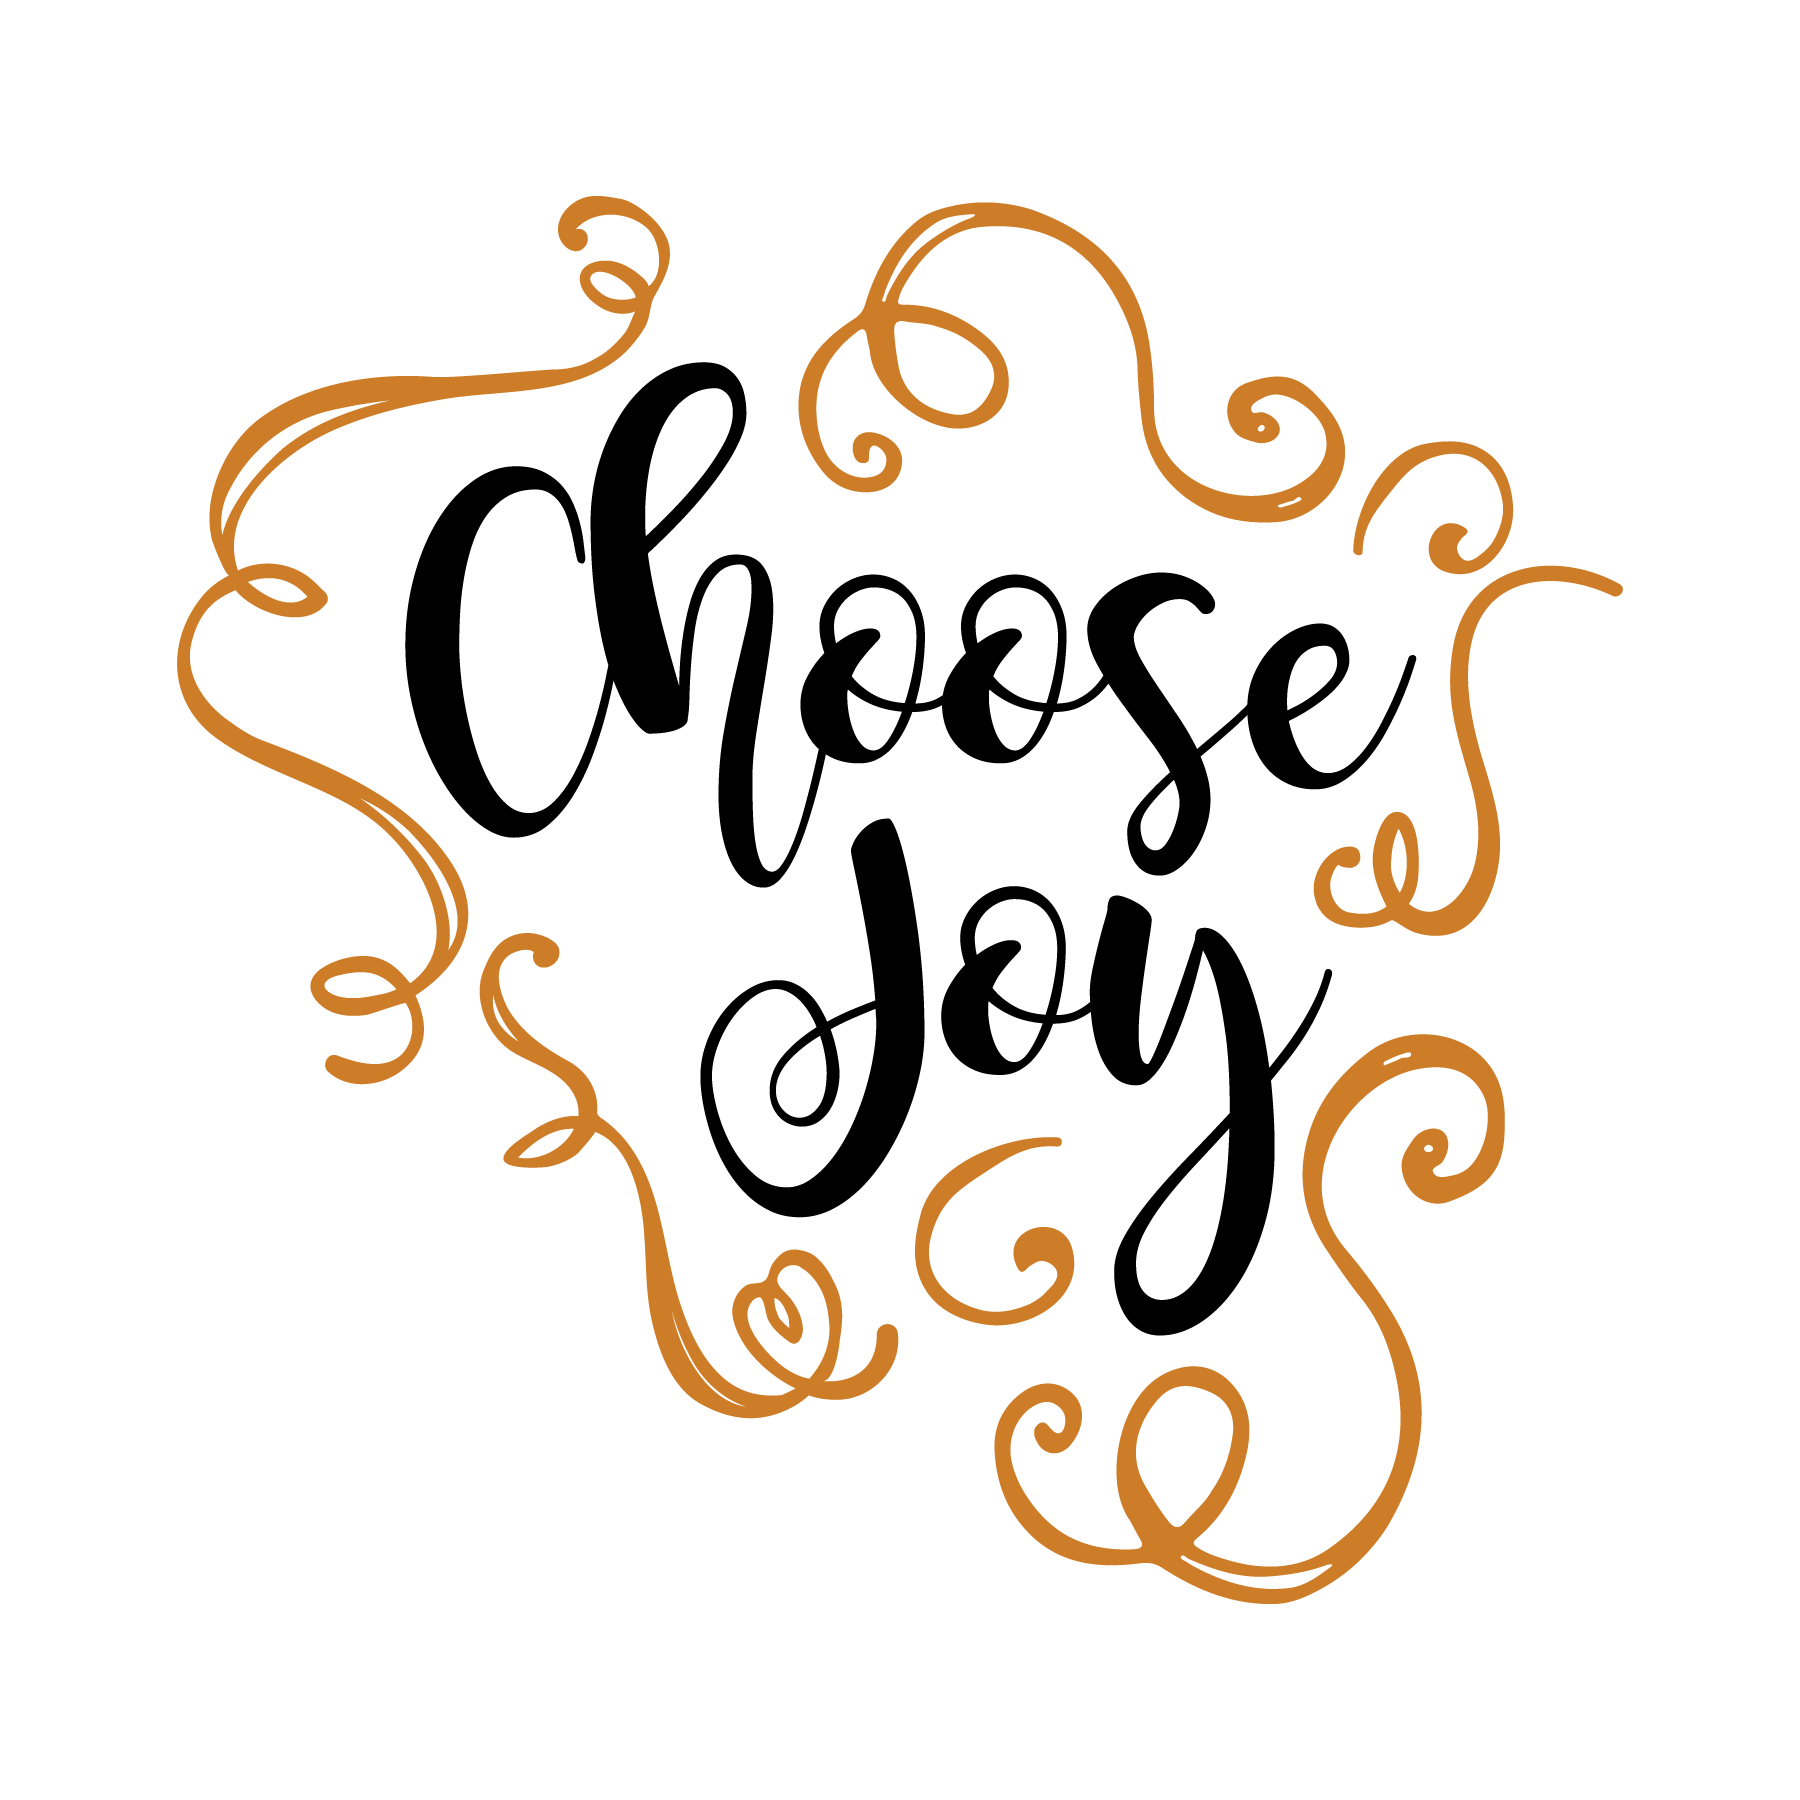 Pin by Tracy Celli on Creative side Choose joy, Free svg